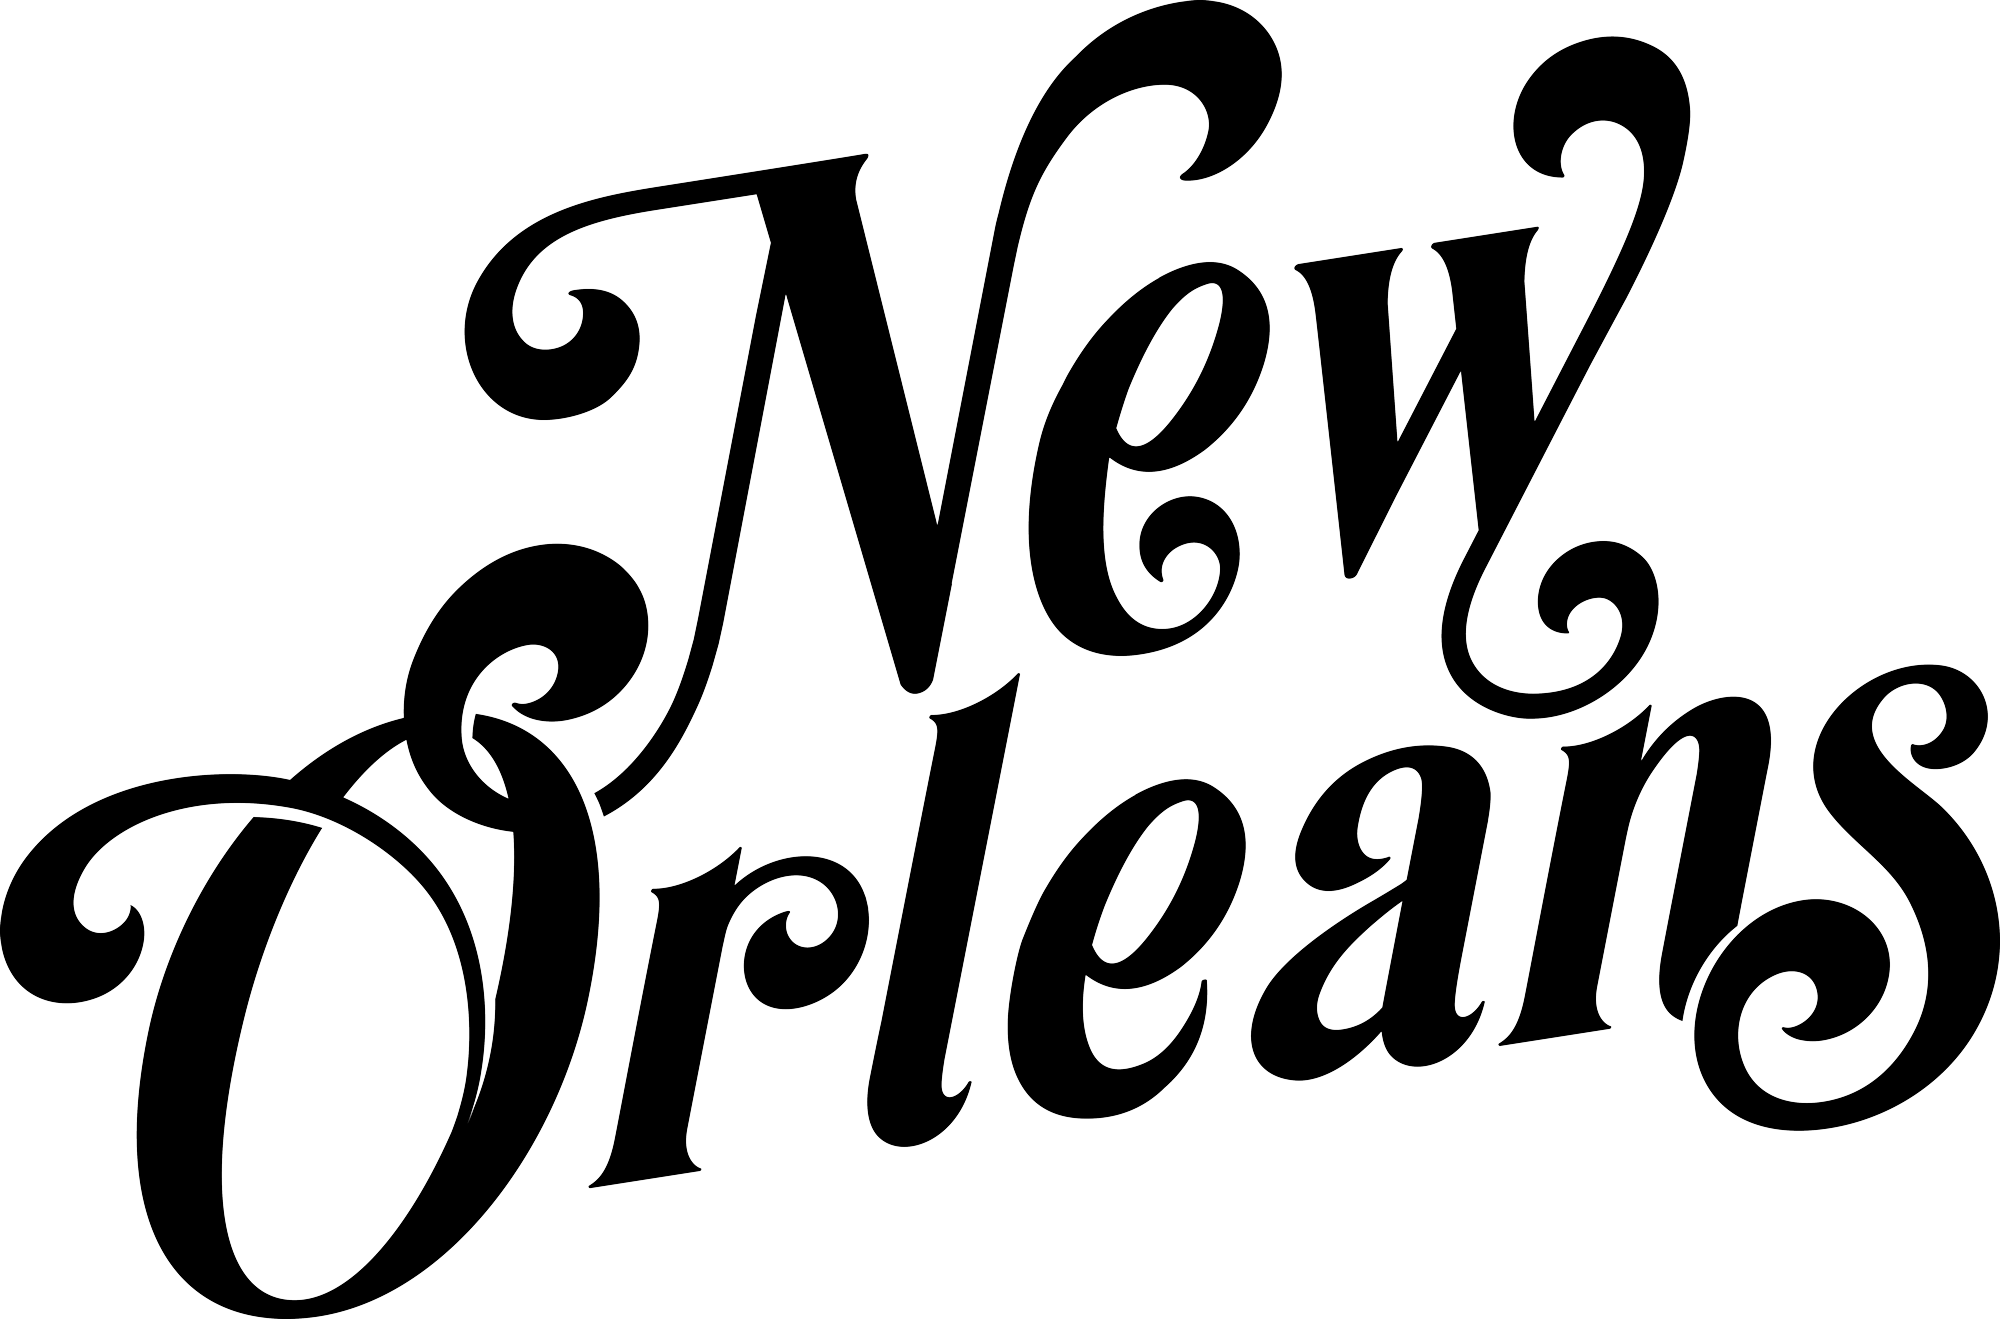 New orleans clipart clipart images gallery for free download.